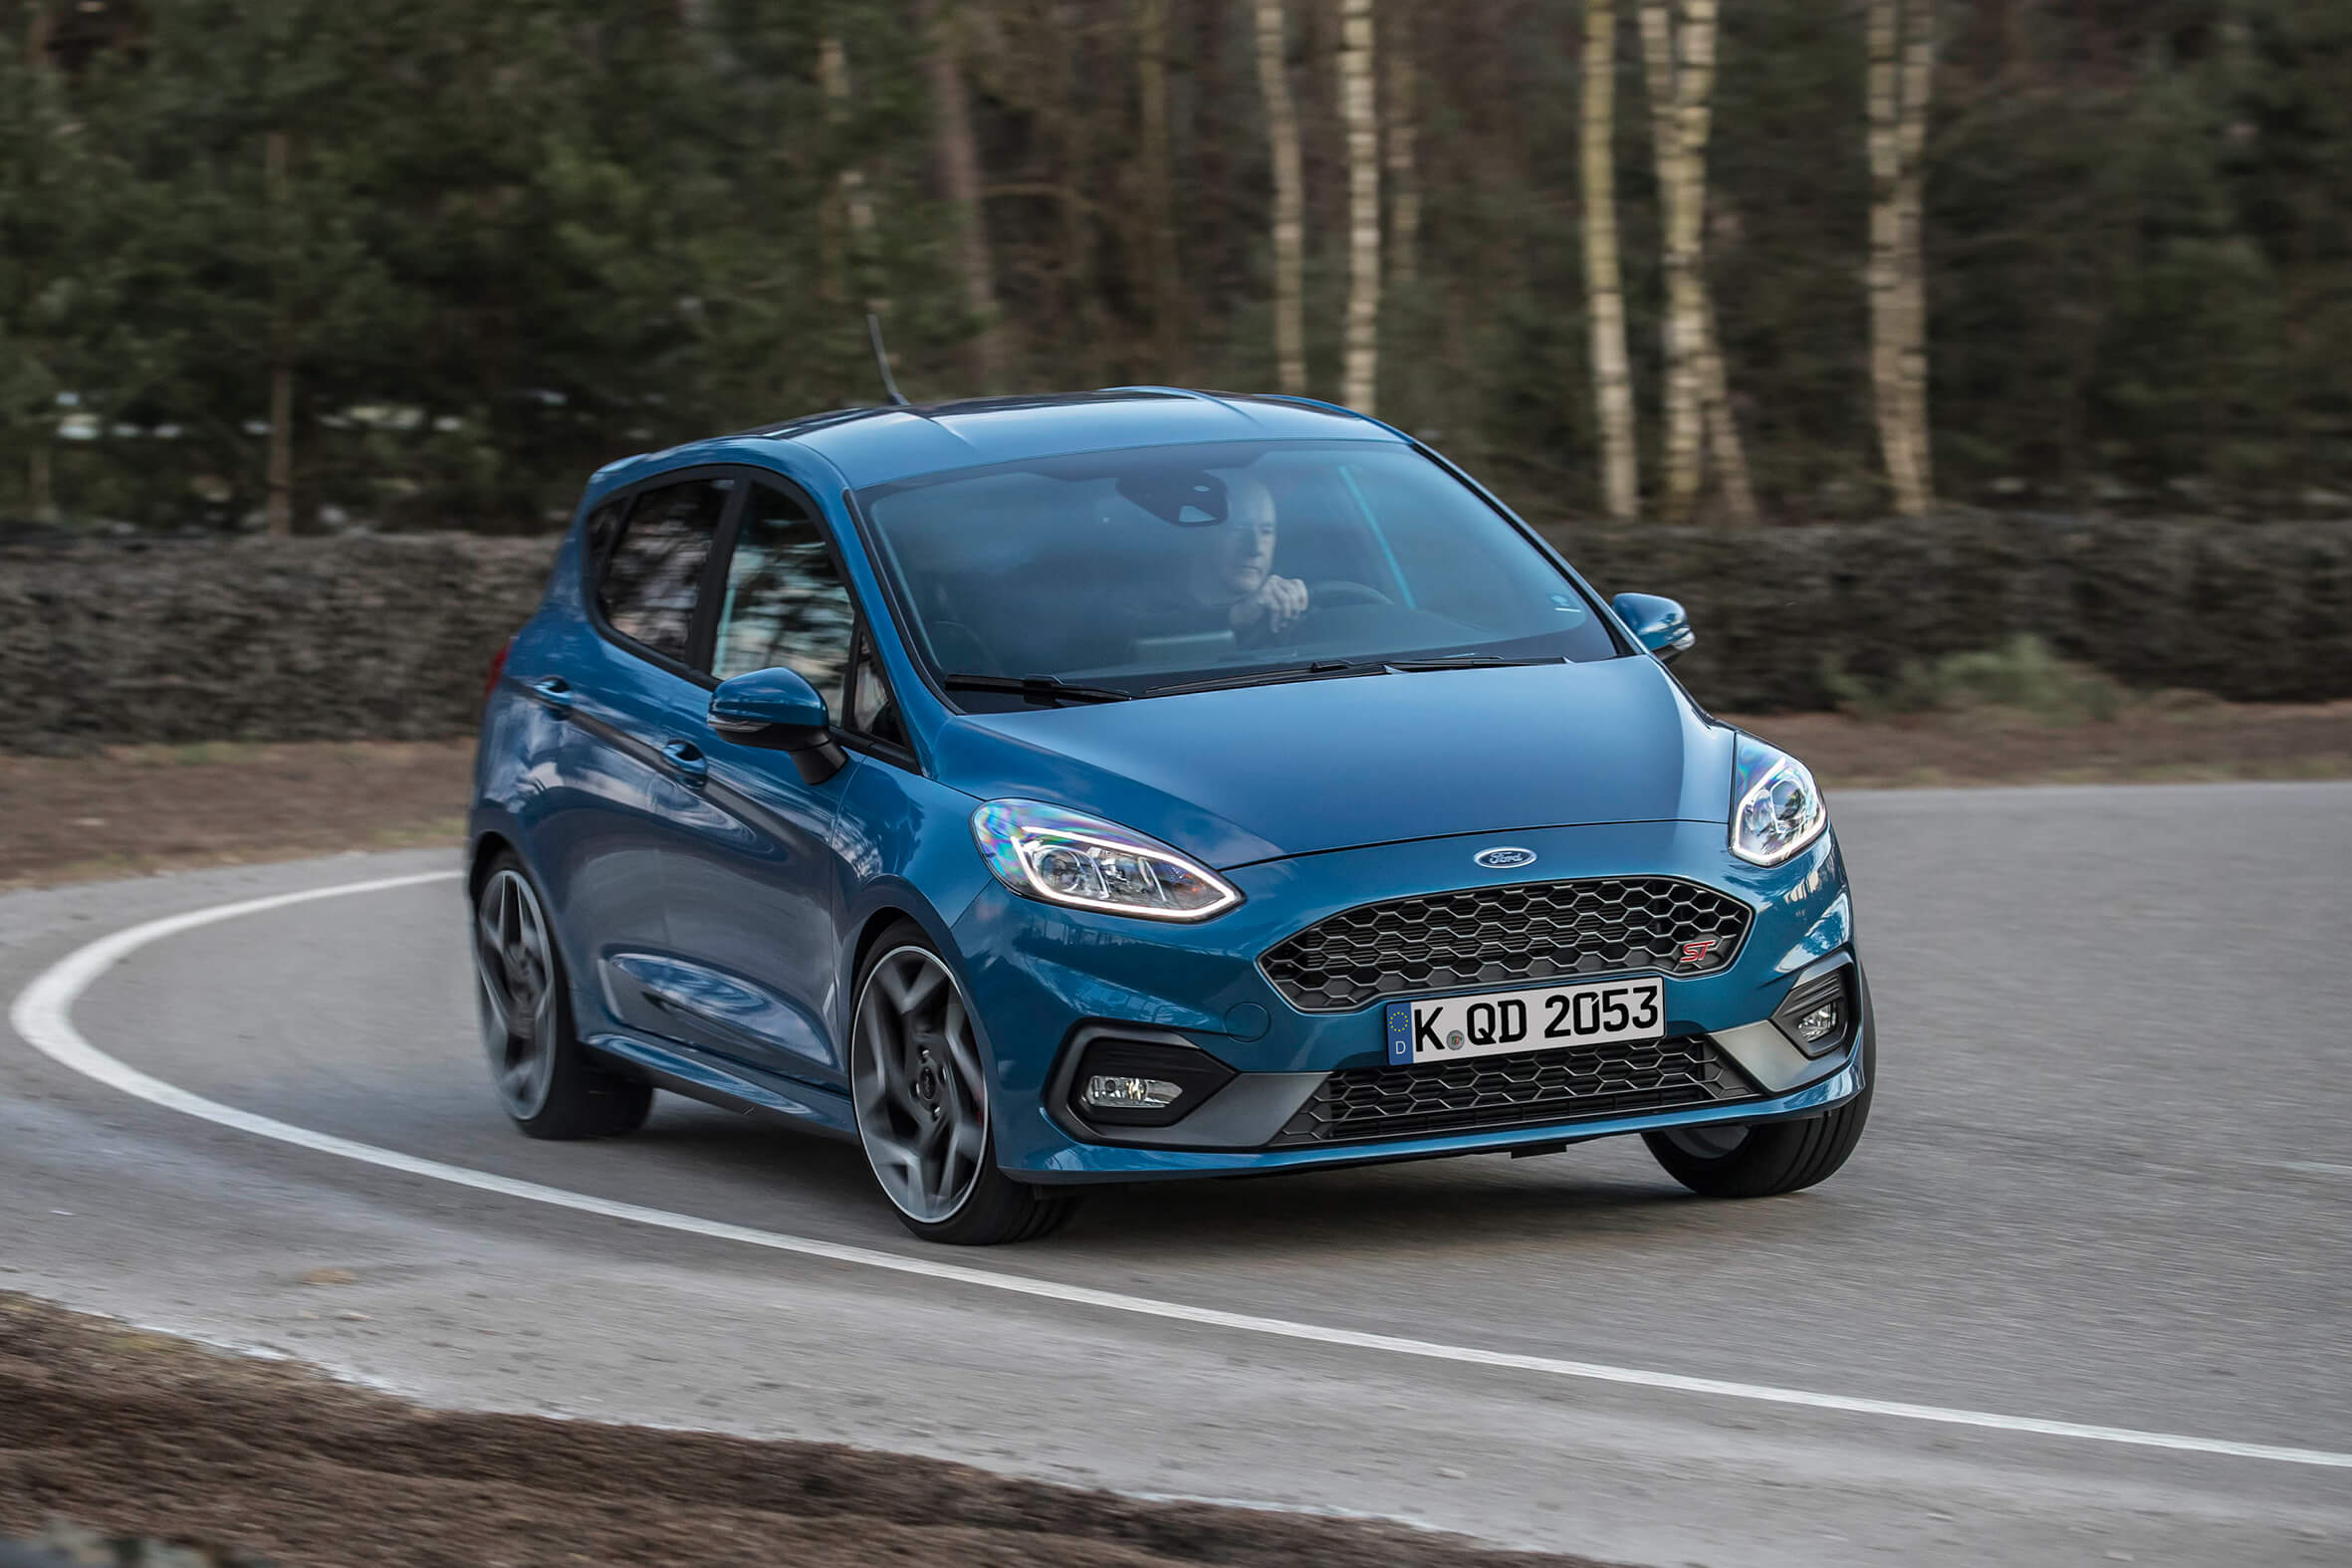 Ford Fiesta 1.5 Ecoboost S